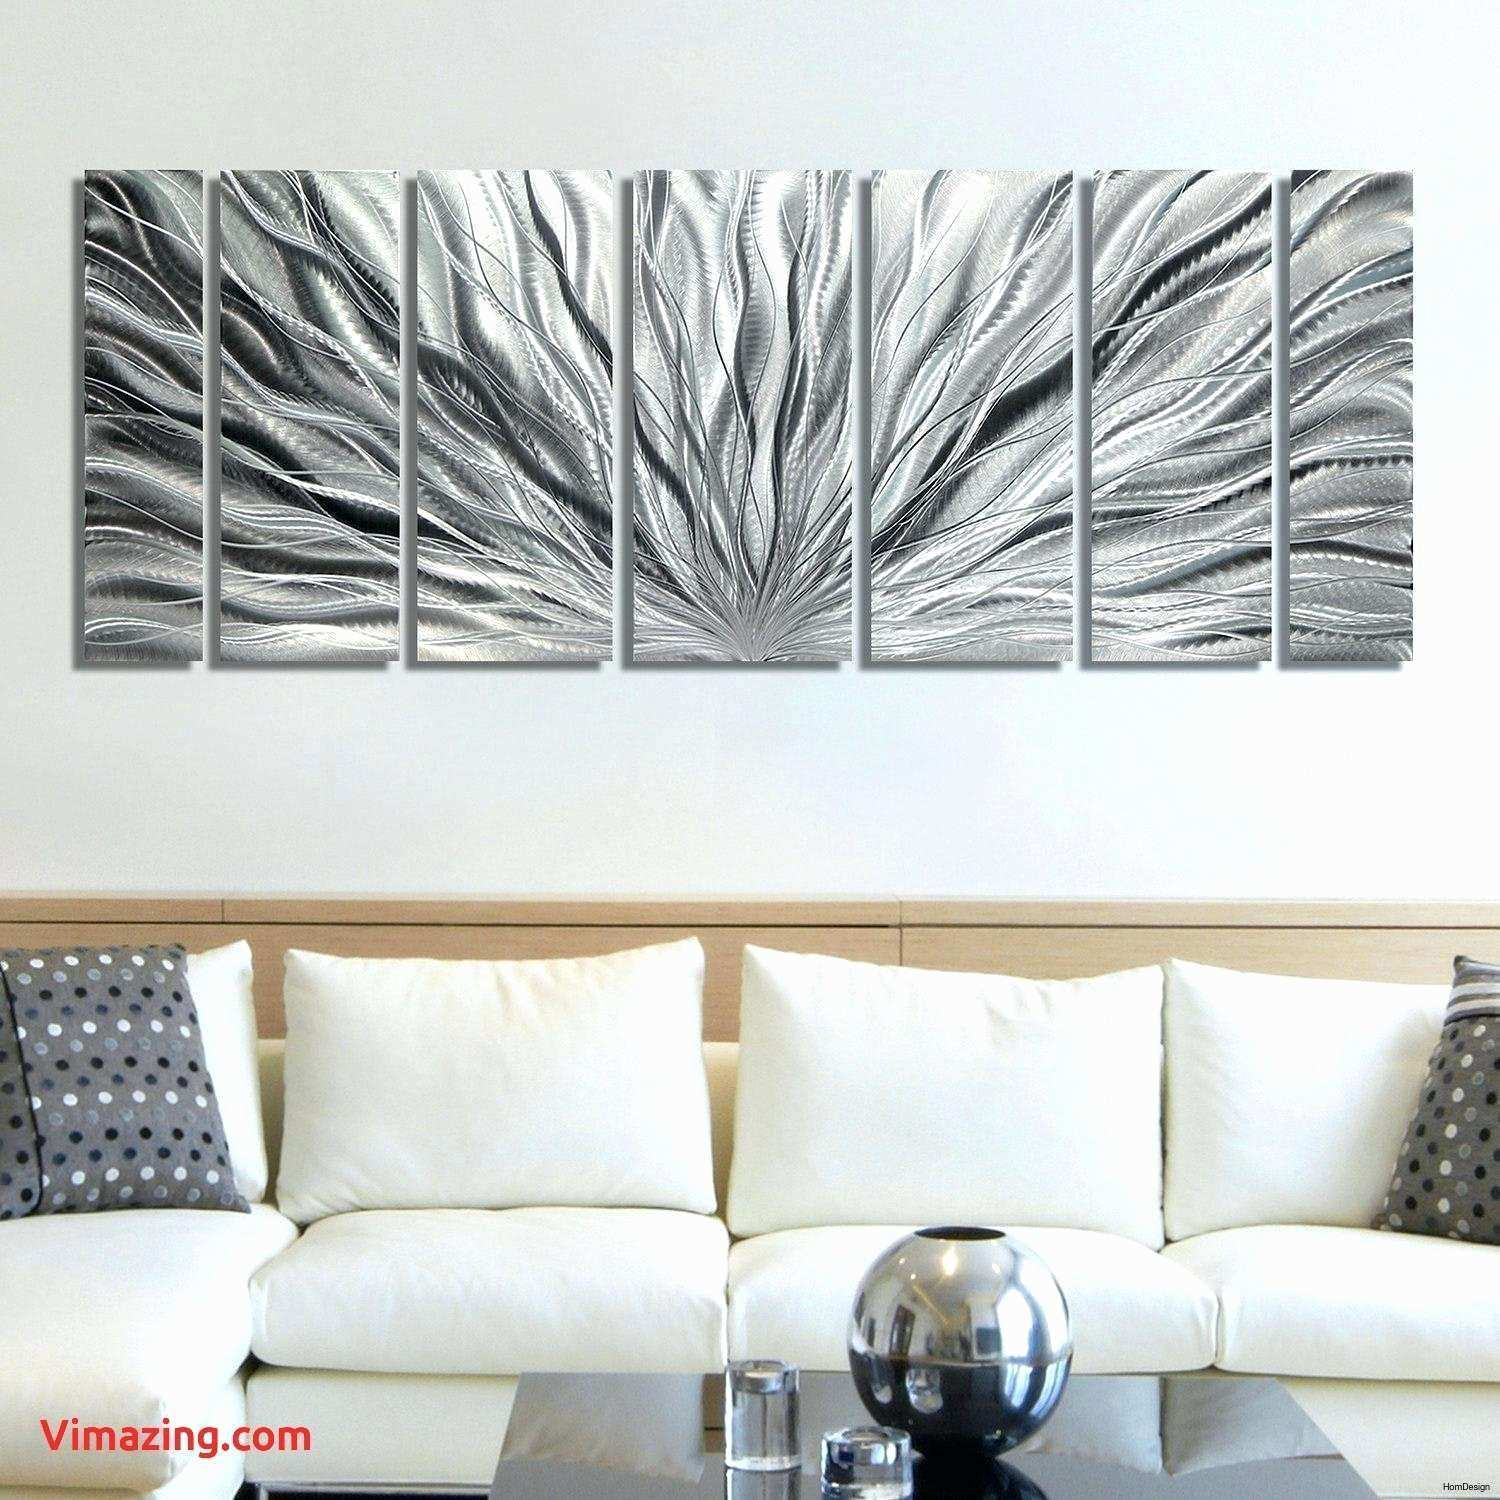 Metal Wall Art Panels Fresh 1 Kirkland Wall Decor Home Design 0d